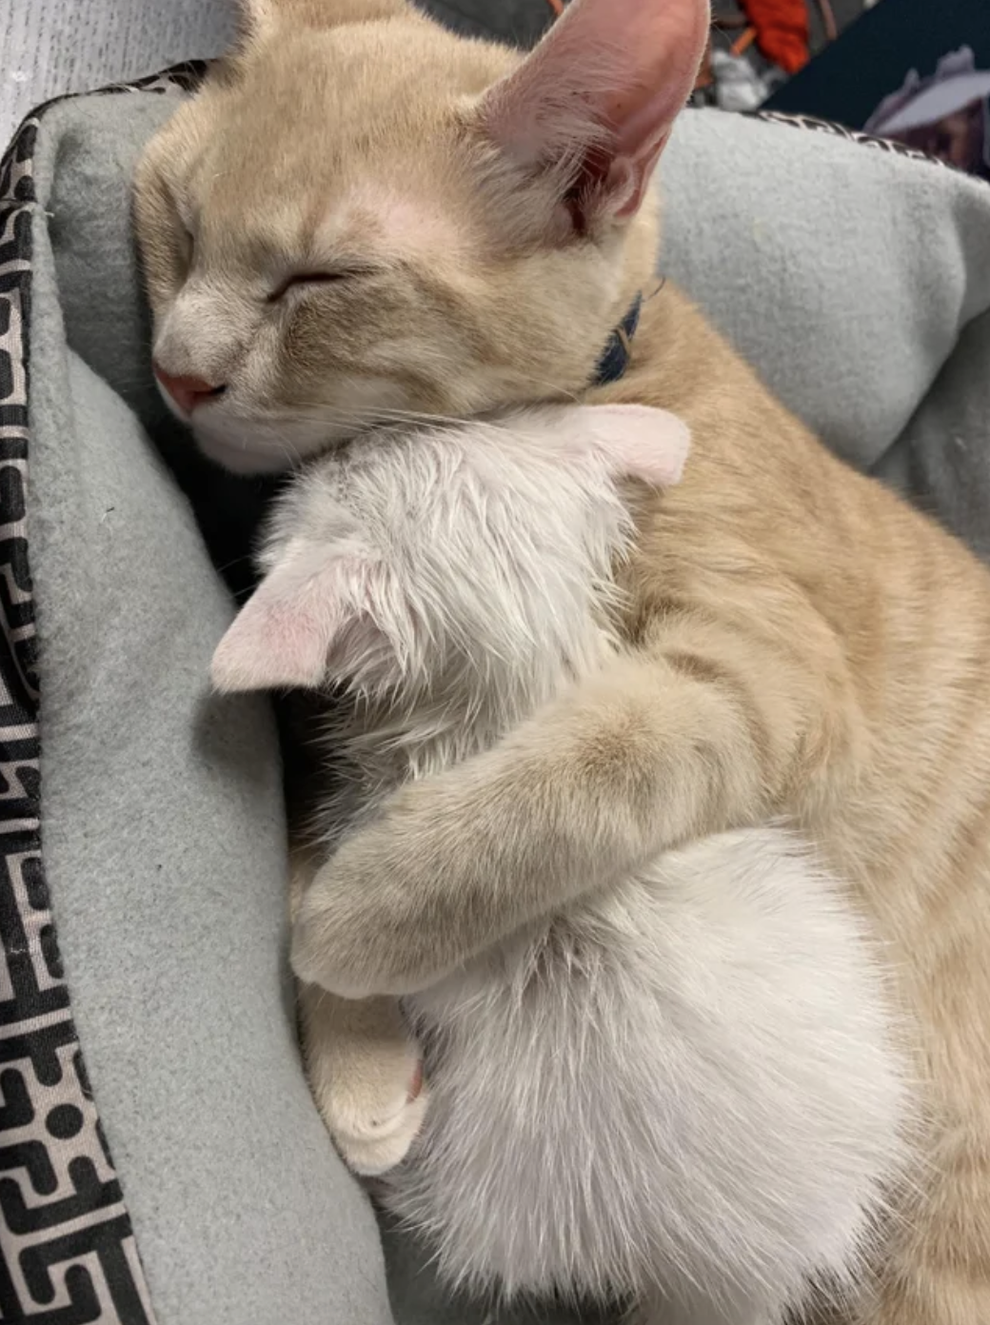 18 Cats Who Just Might Take Your Mind Off How Insane Things Are Right Now In 2020 Cat Cuddle Animals Cute Funny Animals